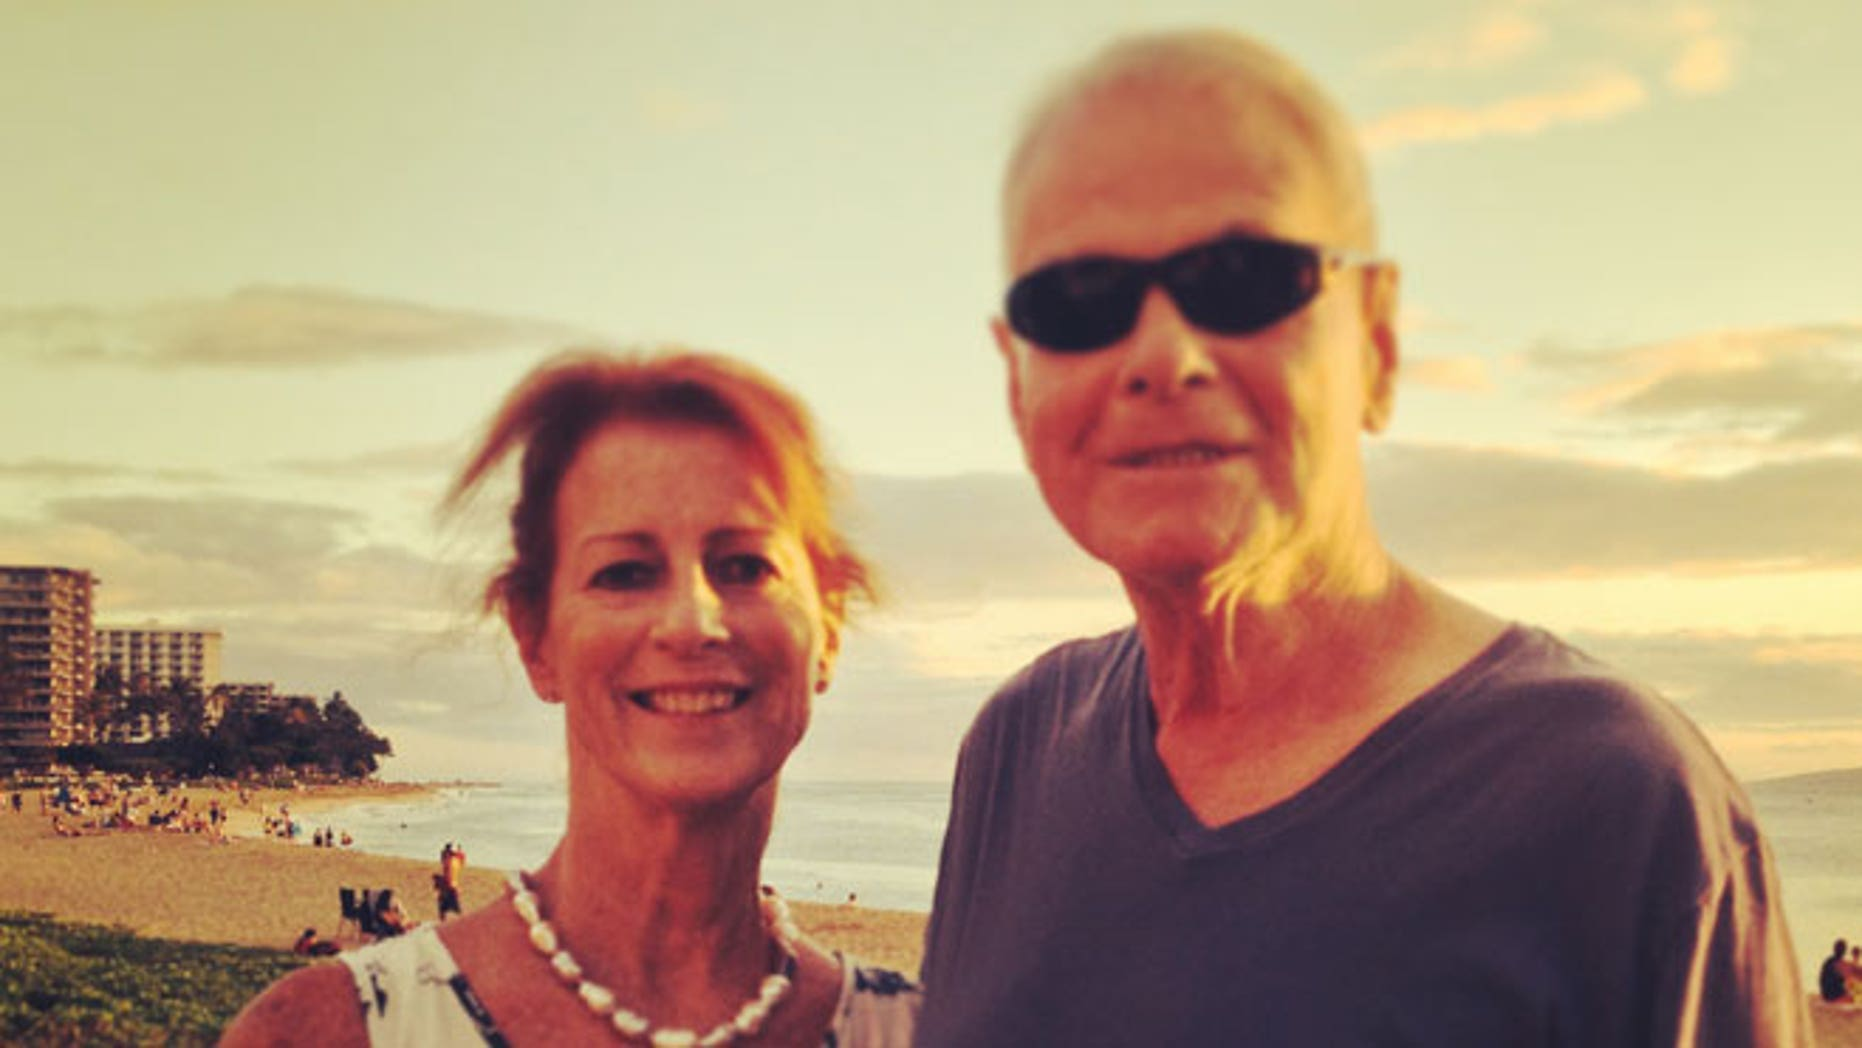 Noreen vacationing with her father, Fred Friend